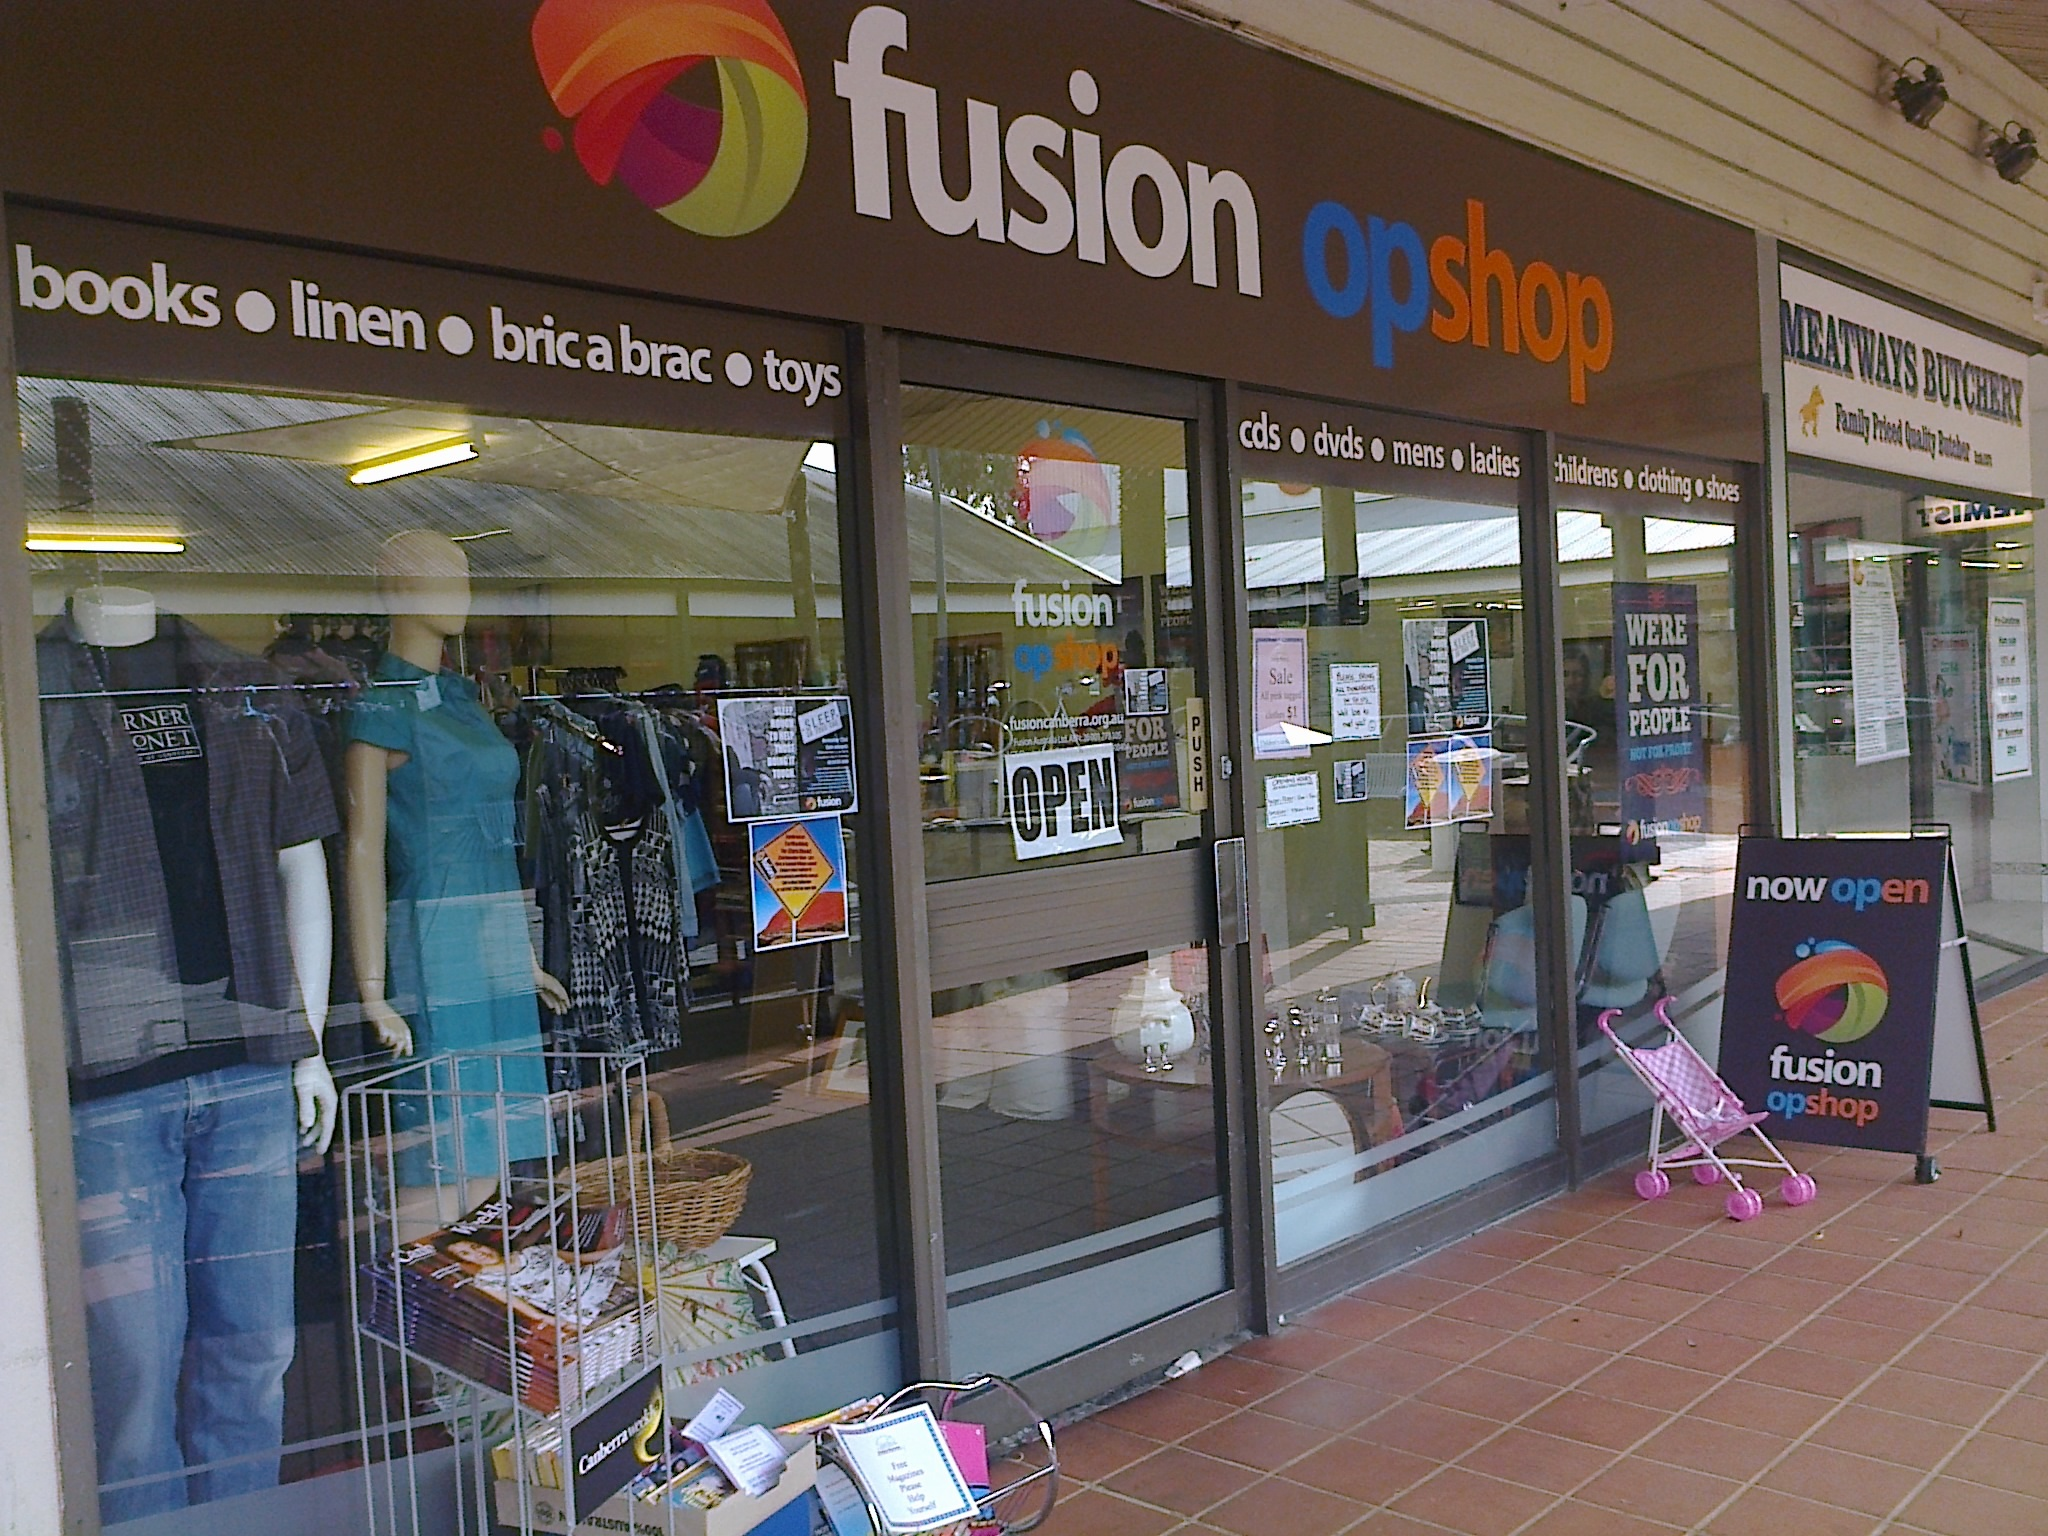 Fusion Op Shop is settling in really well and thriving